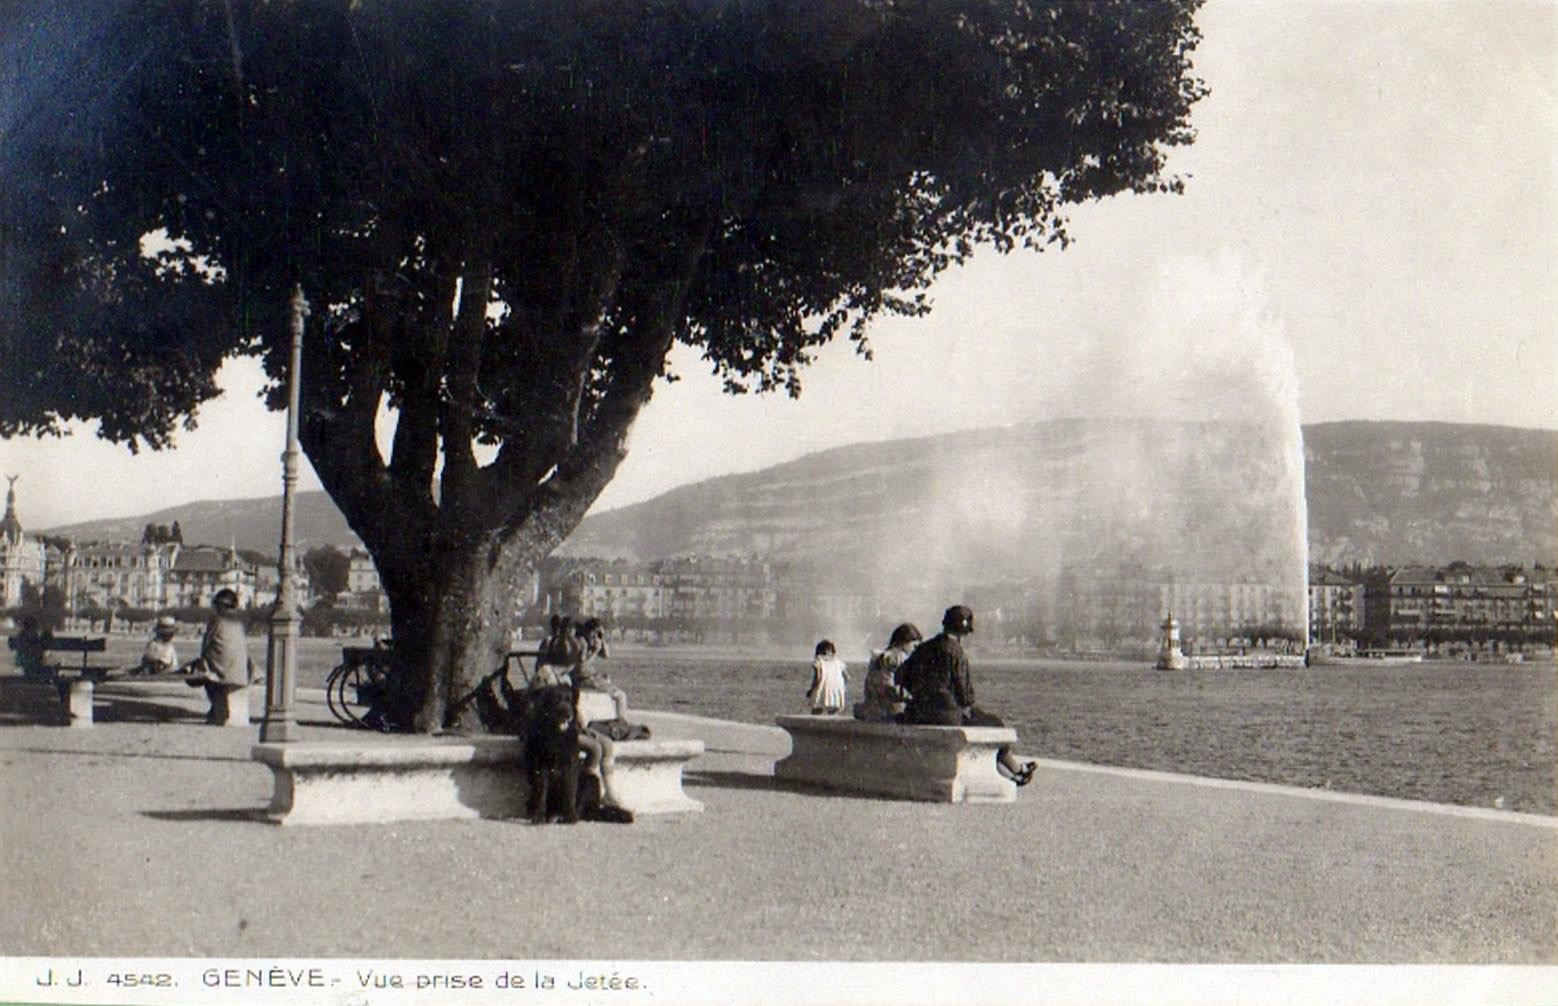 Vintage postcard of Geneva with a view from la Rade, with people sitting under a big tree over the Jet d'Eau and the Salève.